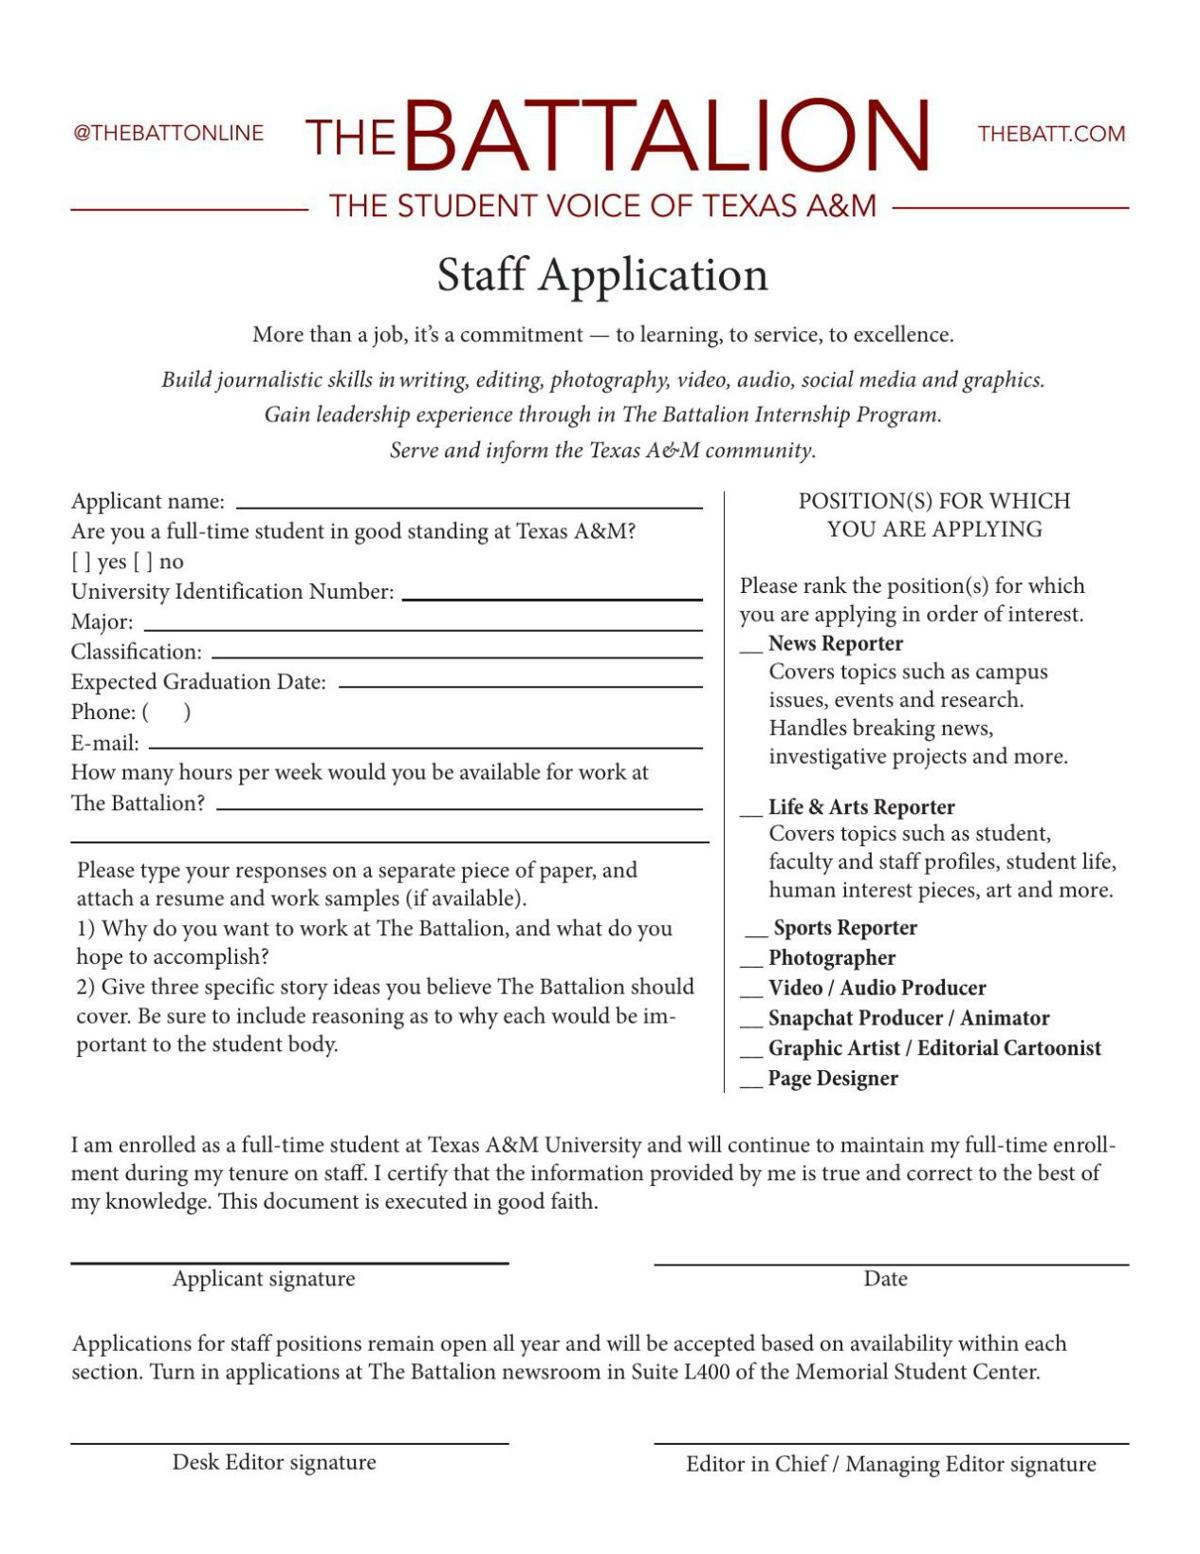 2018-2019 Staff Application